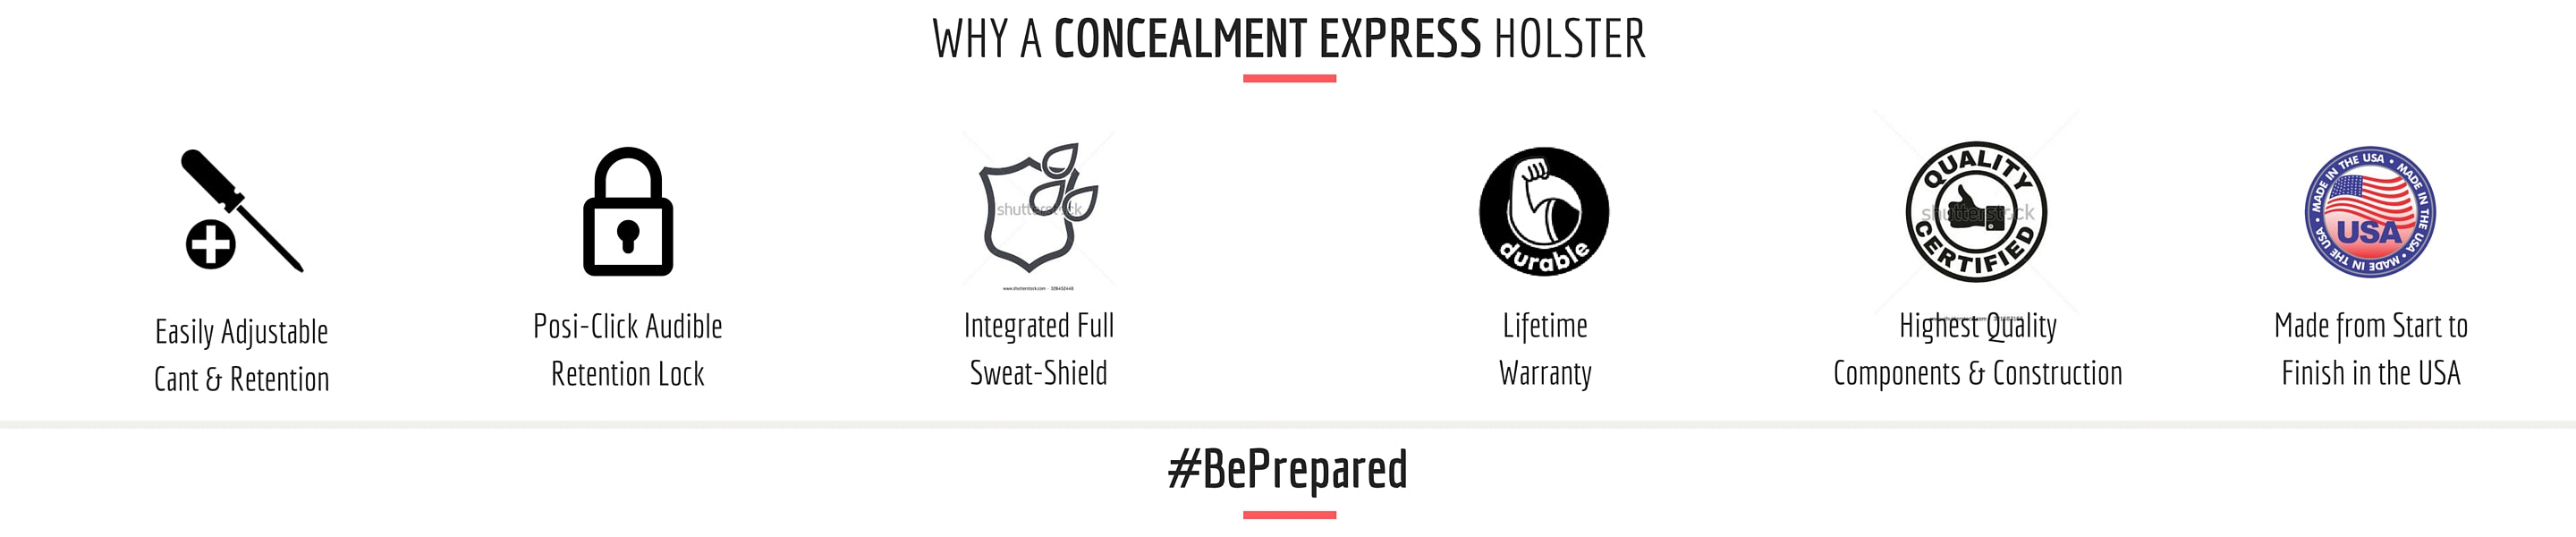 Why Choose a Concealment Express Holster